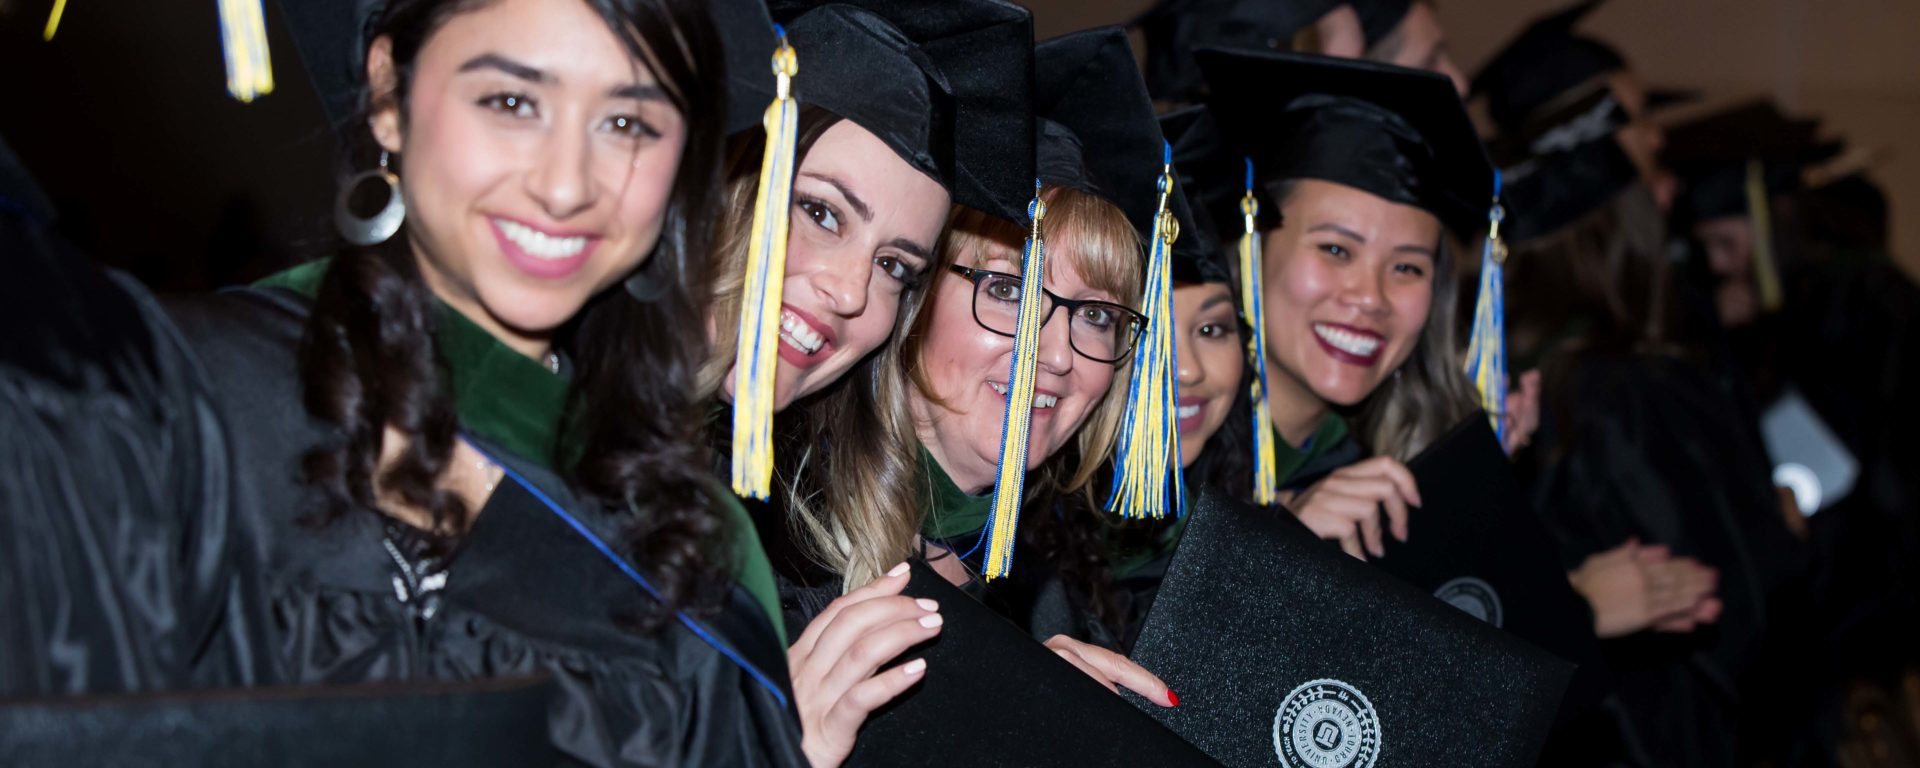 Touro University Nevada celebrated the academic achievements of students from the Schools of Physician Assistant Studies (PA), Nursing, and Education during Winter Commencement at the Paris Las Vegas on Nov. 3.